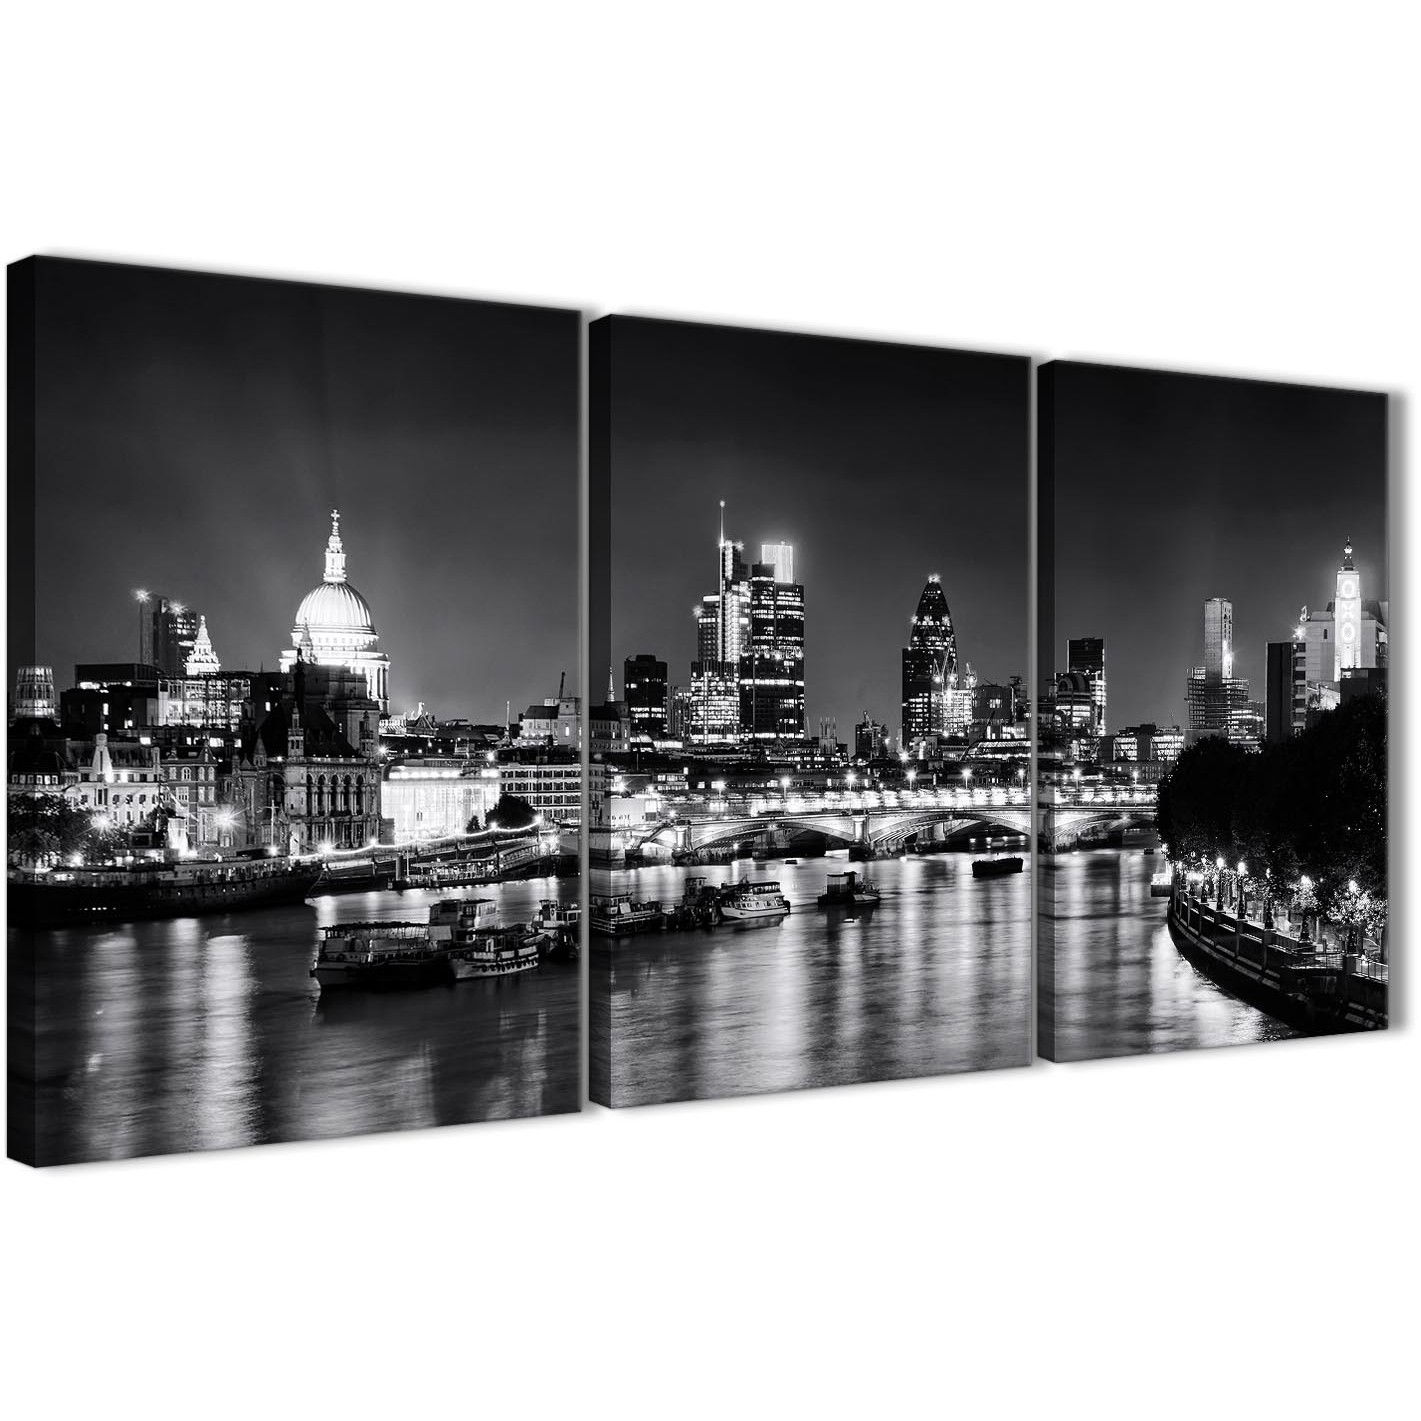 Next set of 3 piece landscape canvas wall art river thames skyline of london 3430 display gallery item 1